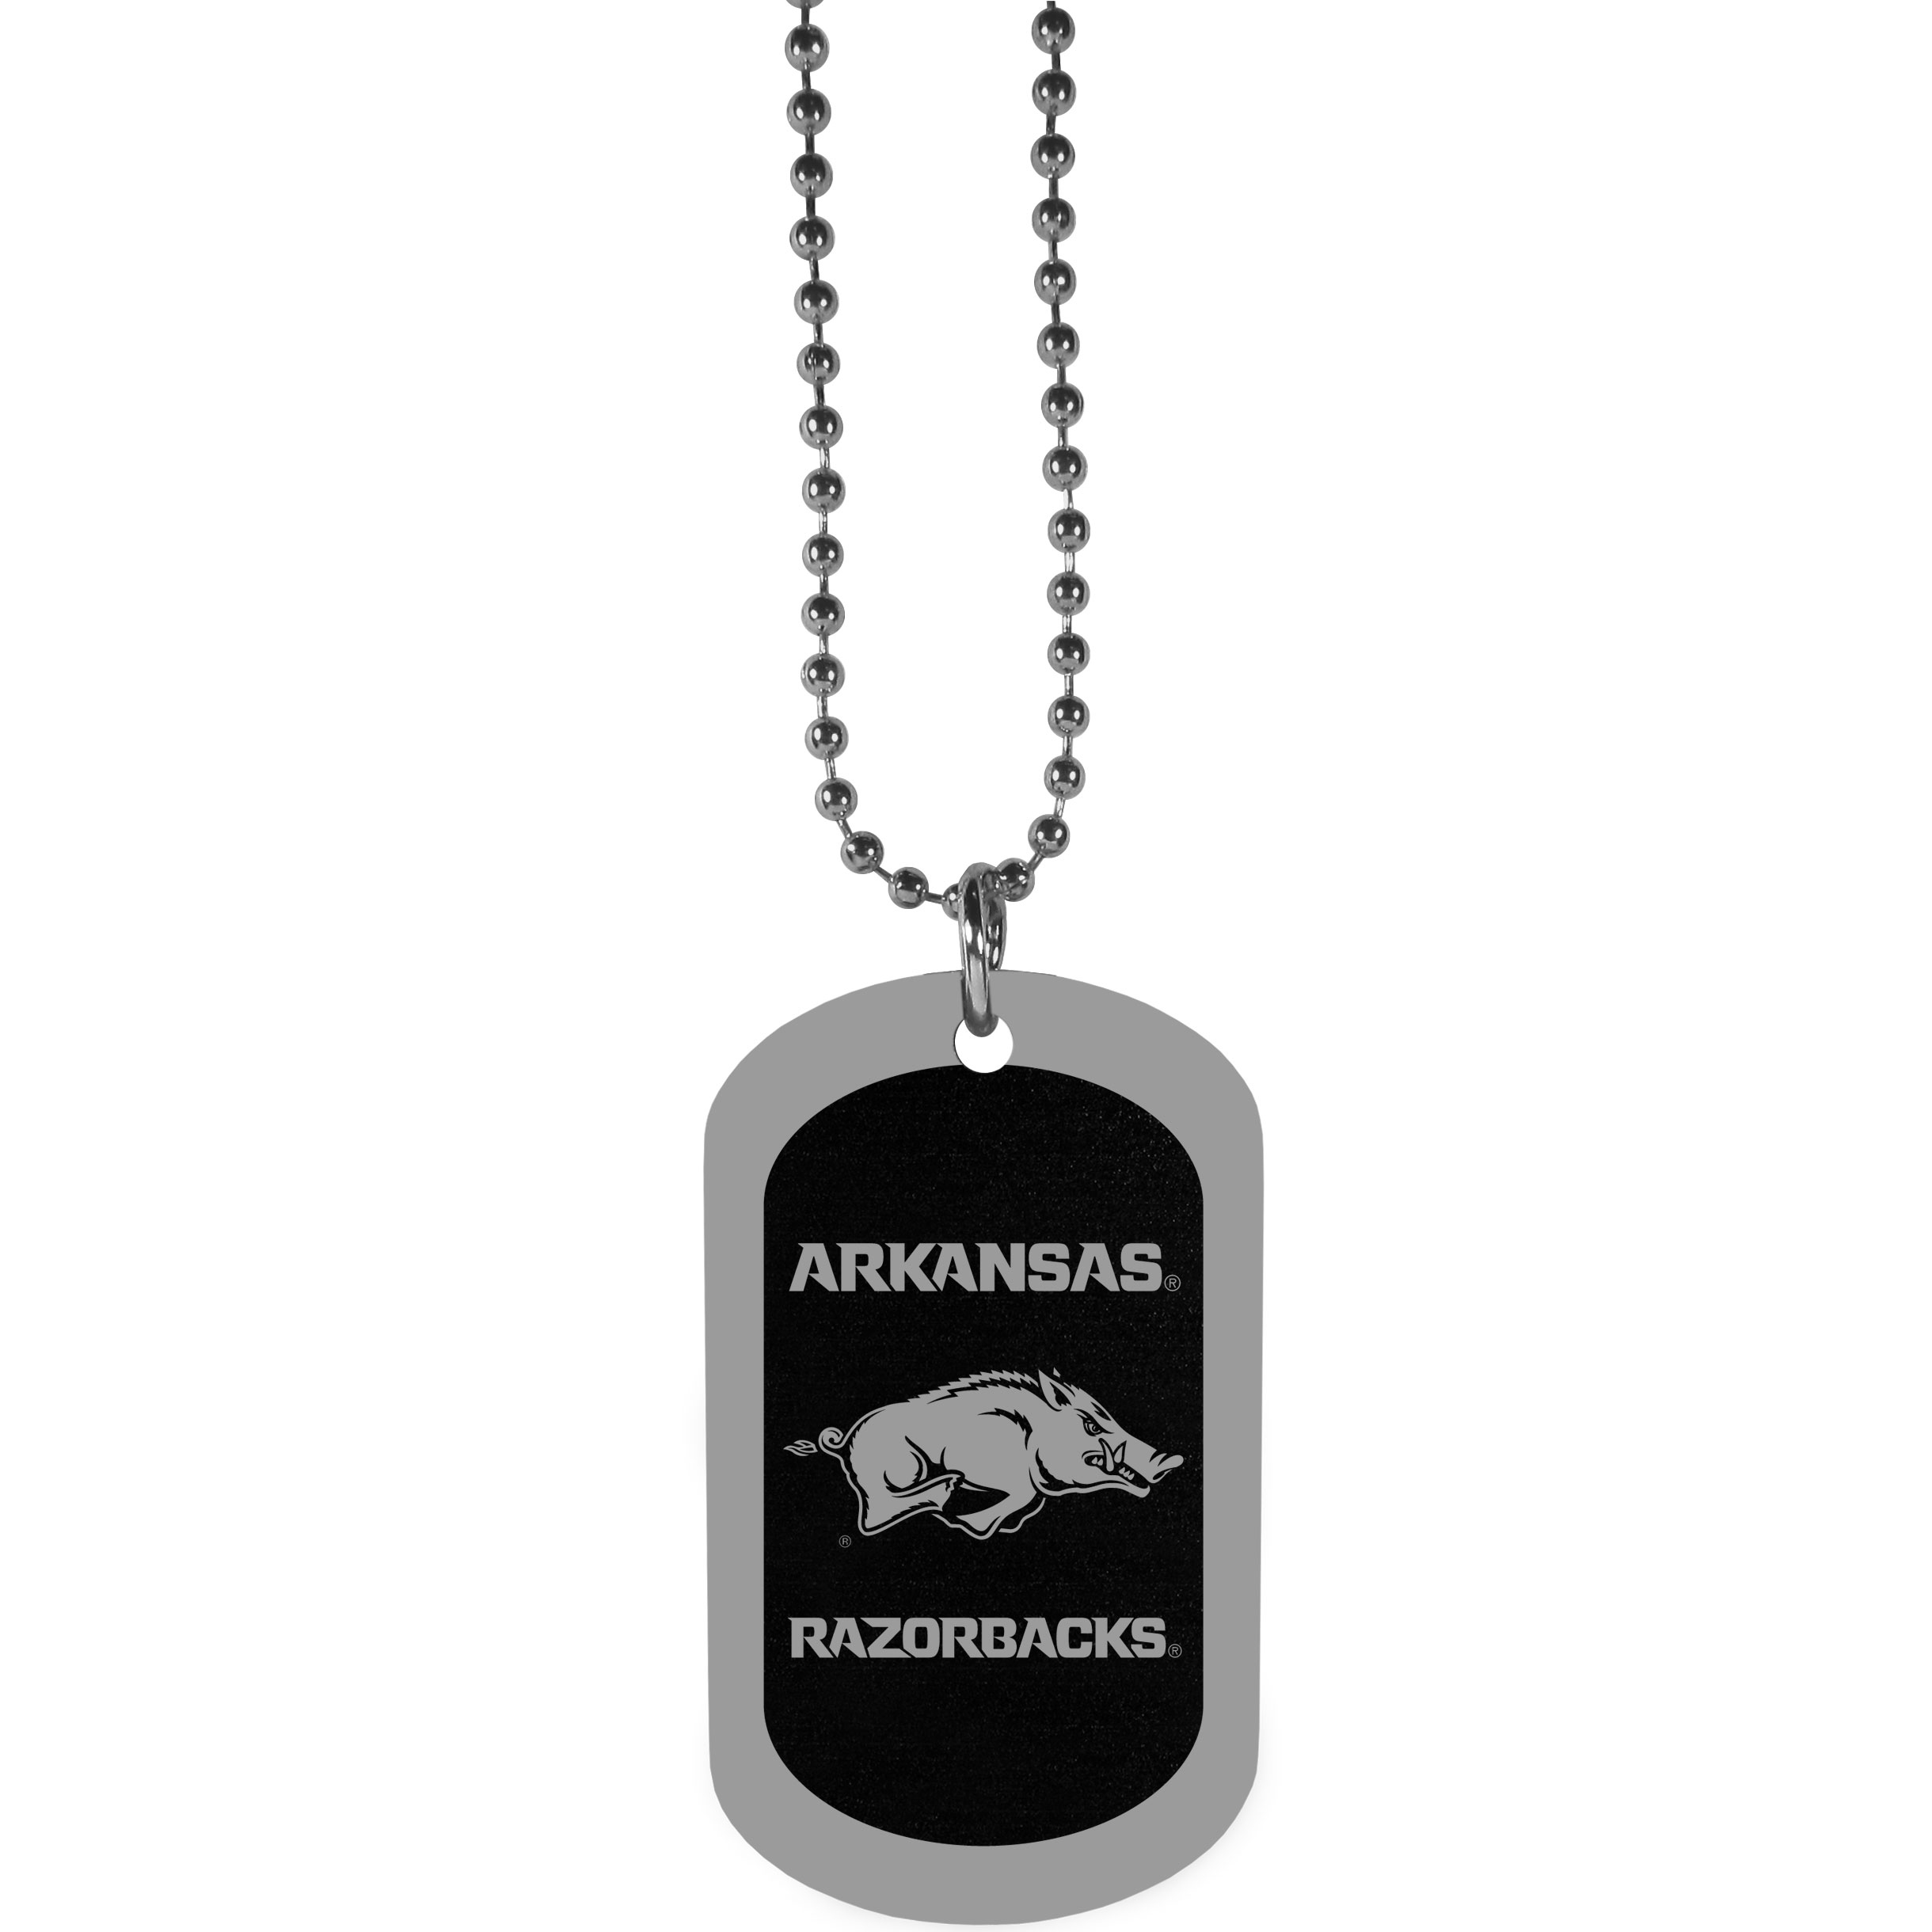 Arkansas Razorbacks Chrome Tag Necklace - Dog tag necklaces are a fashion statement that is here to stay. The sporty version of the classic tag features a black printed over a high polish tag to create a bold and sporty look. The tag comes on a 26 inch ball chain with a ball and joint clasp. Any Arkansas Razorbacks would be proud to wear this attractive fashion accessory.